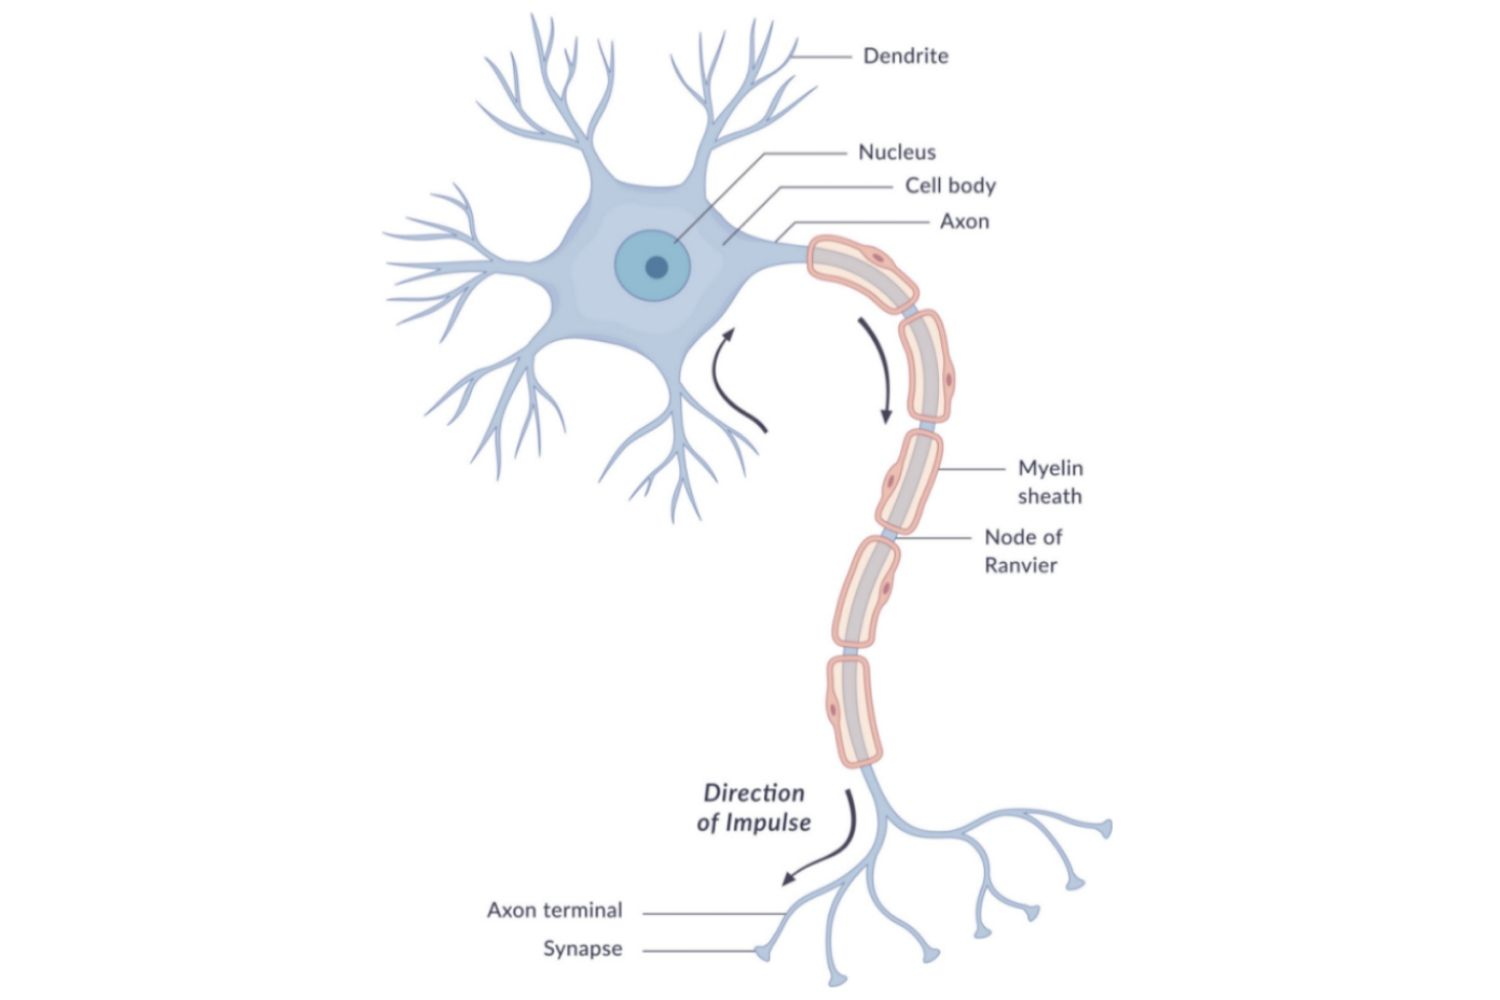 Human Biology The Anatomy Of Neurons Cell Model With Labels Animal Structure Unlabeled Diagram Labeled A Neuron